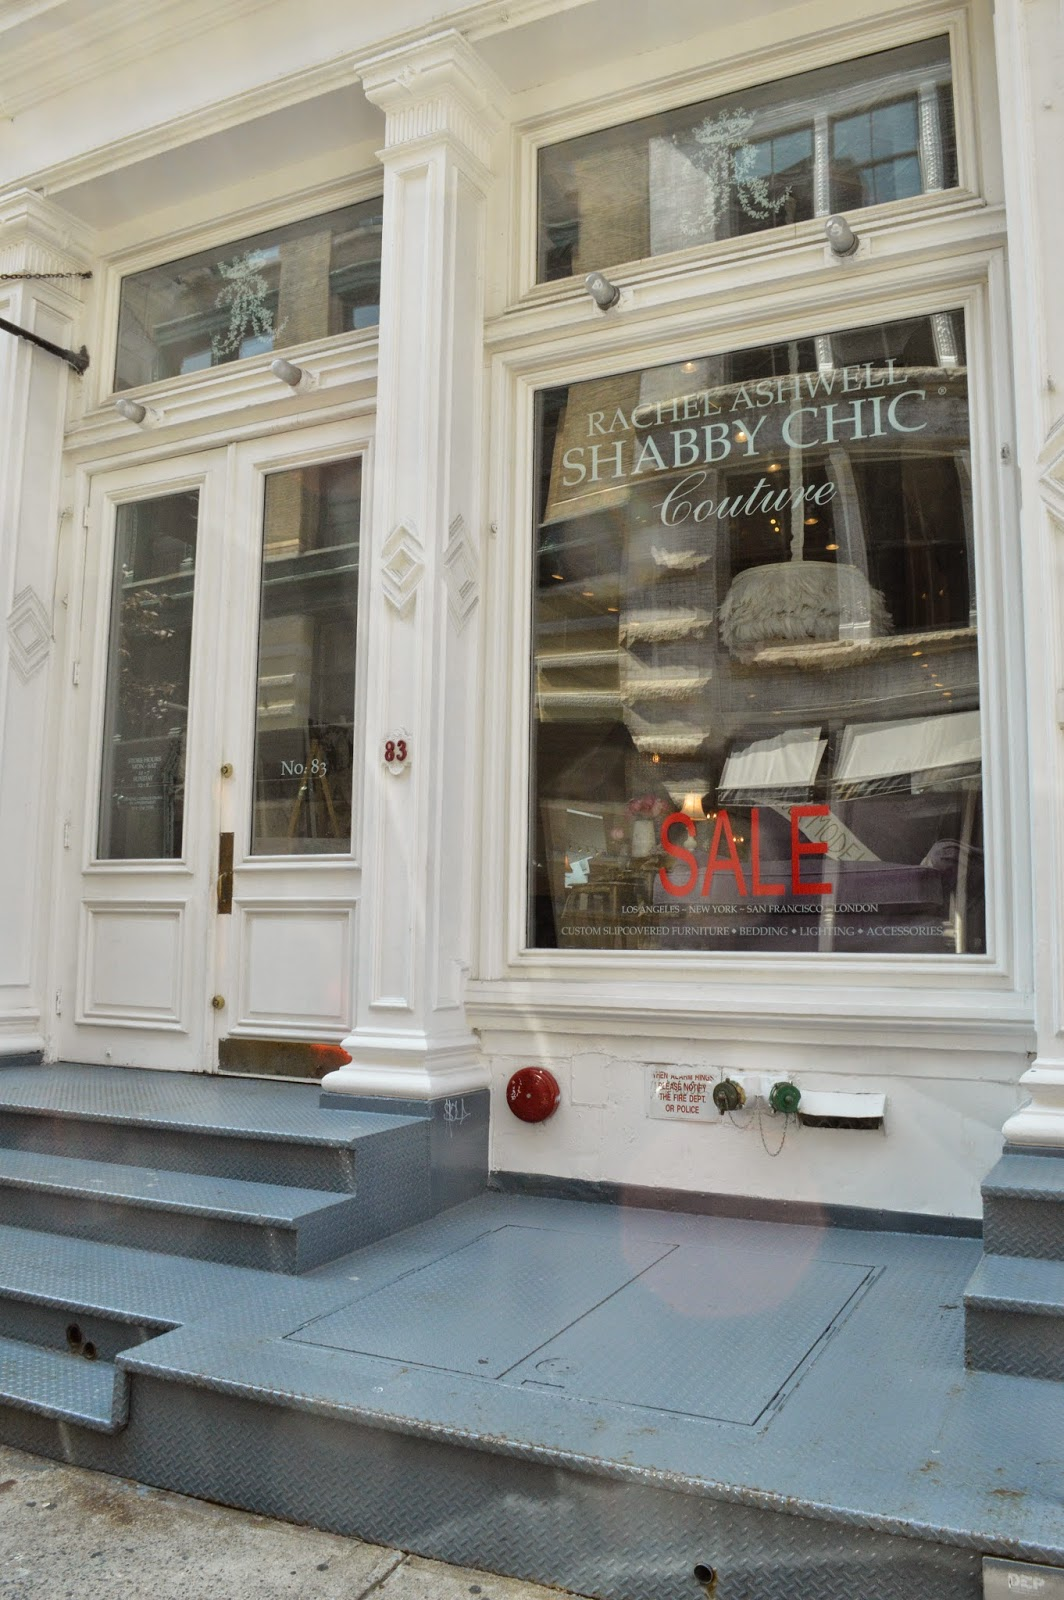 Shabby Chic Shop A Visit To Rachel Ashwell's Shabby Chic Store In New York